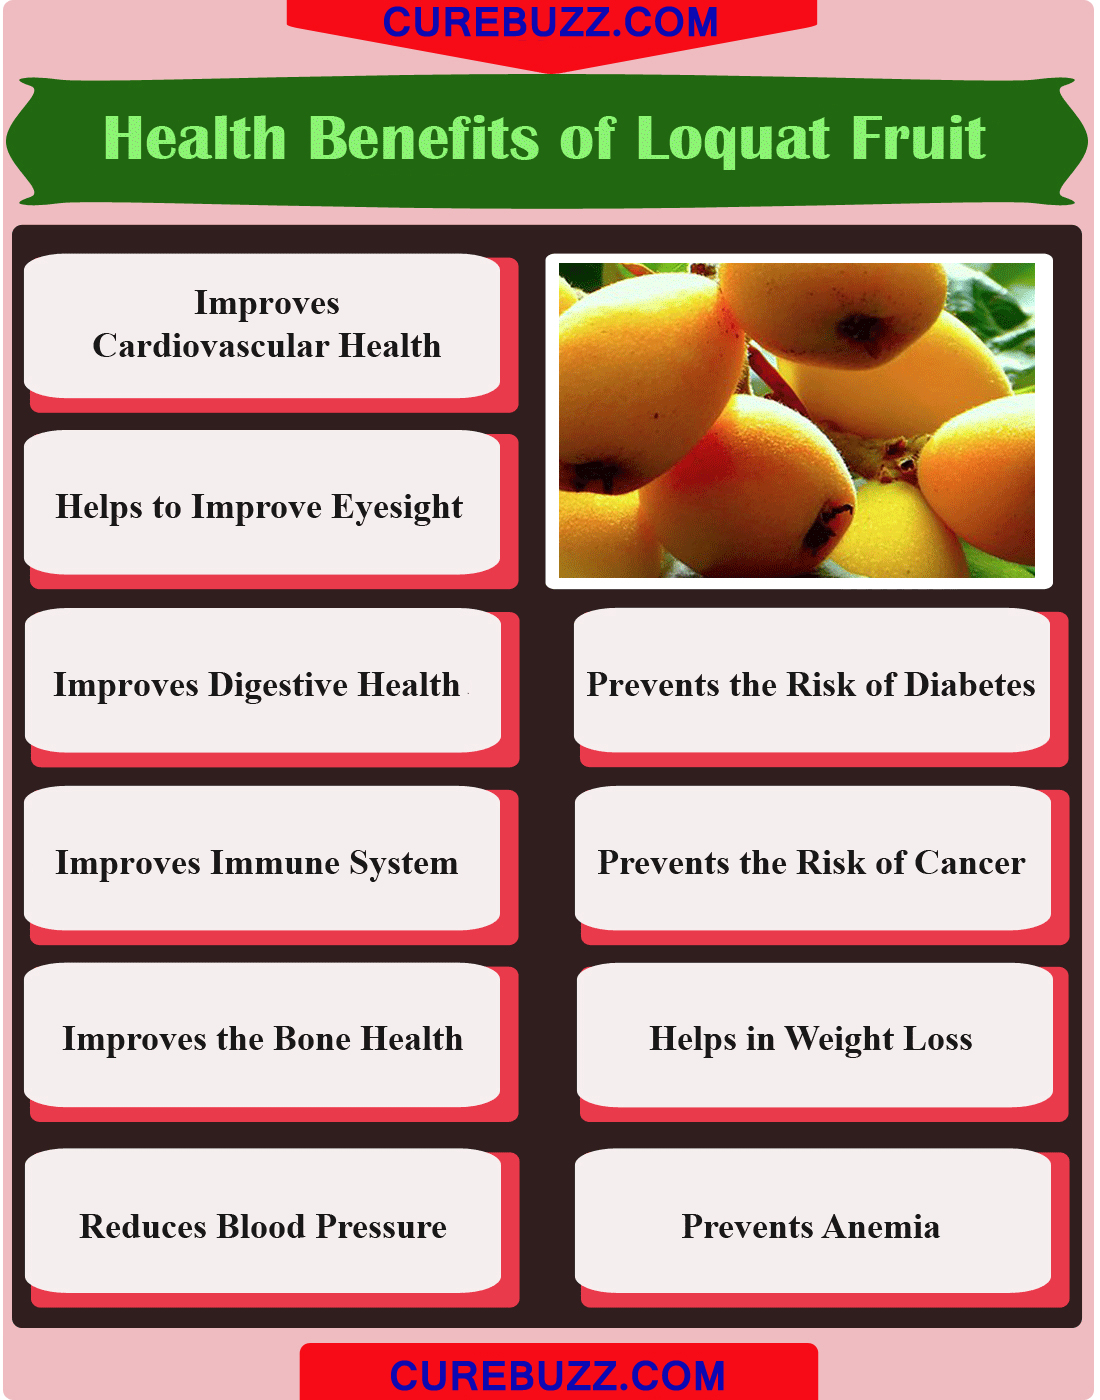 10 health benefits of loquat fruit : curebuzz